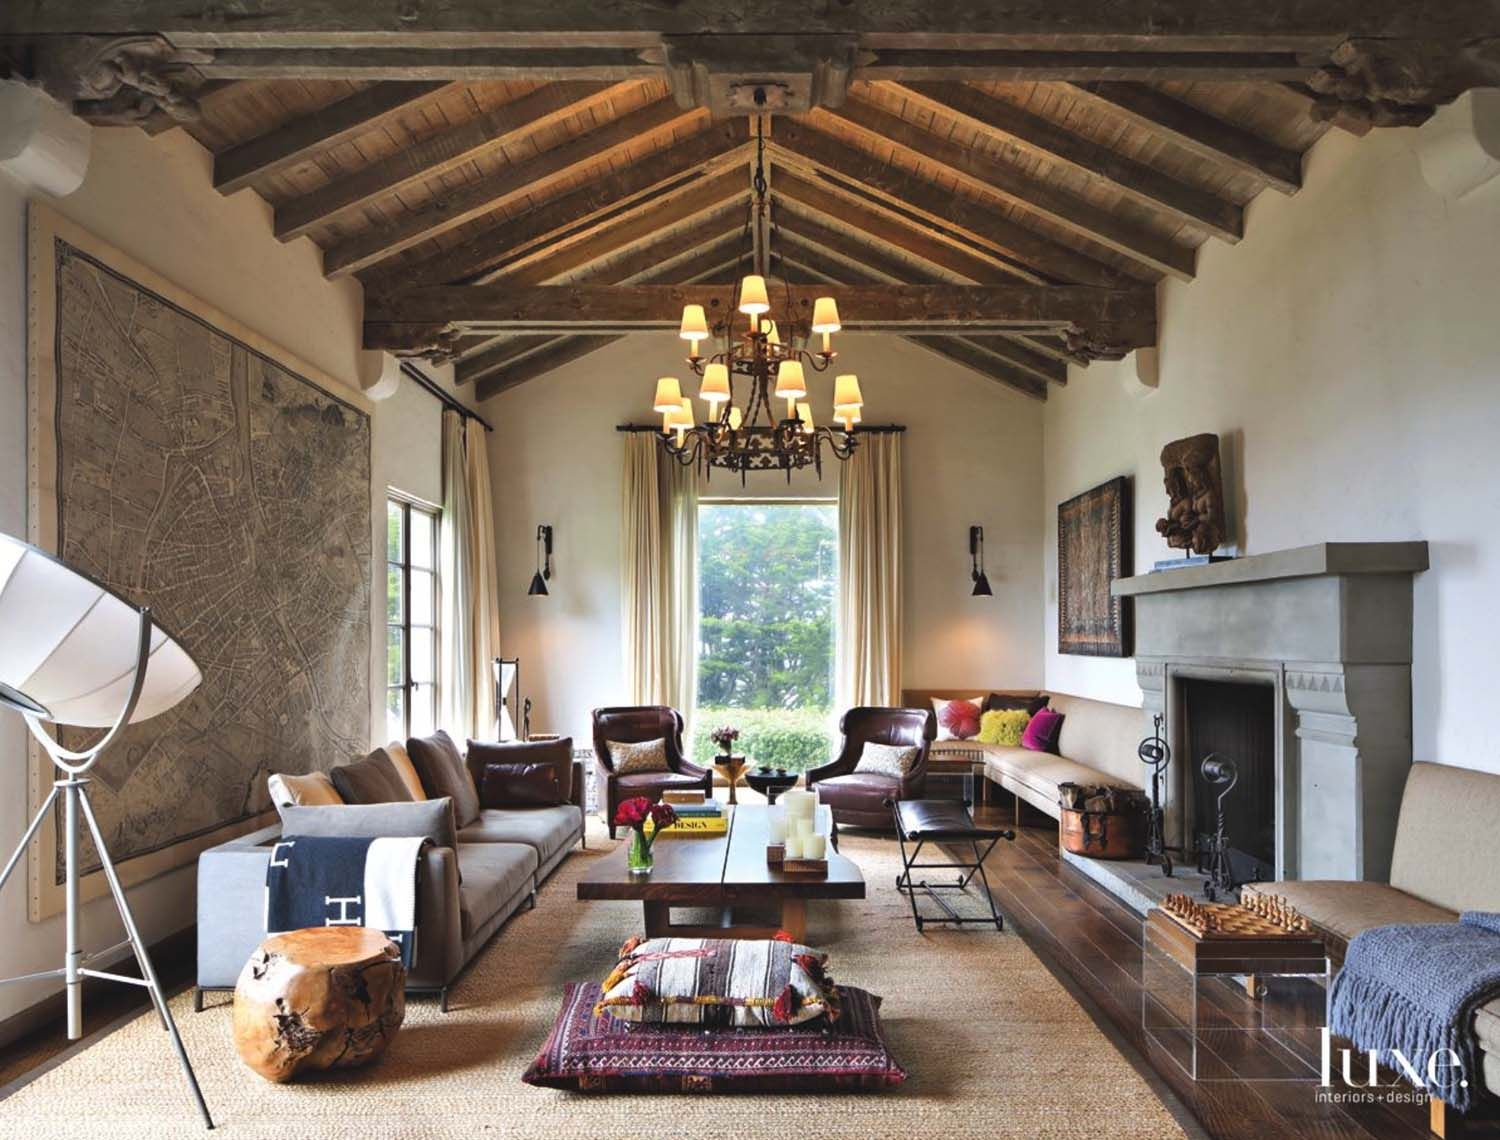 Explore Interior Design Magazine And More Gorgeous Spanish Colonial Style Renovation In San Francisco